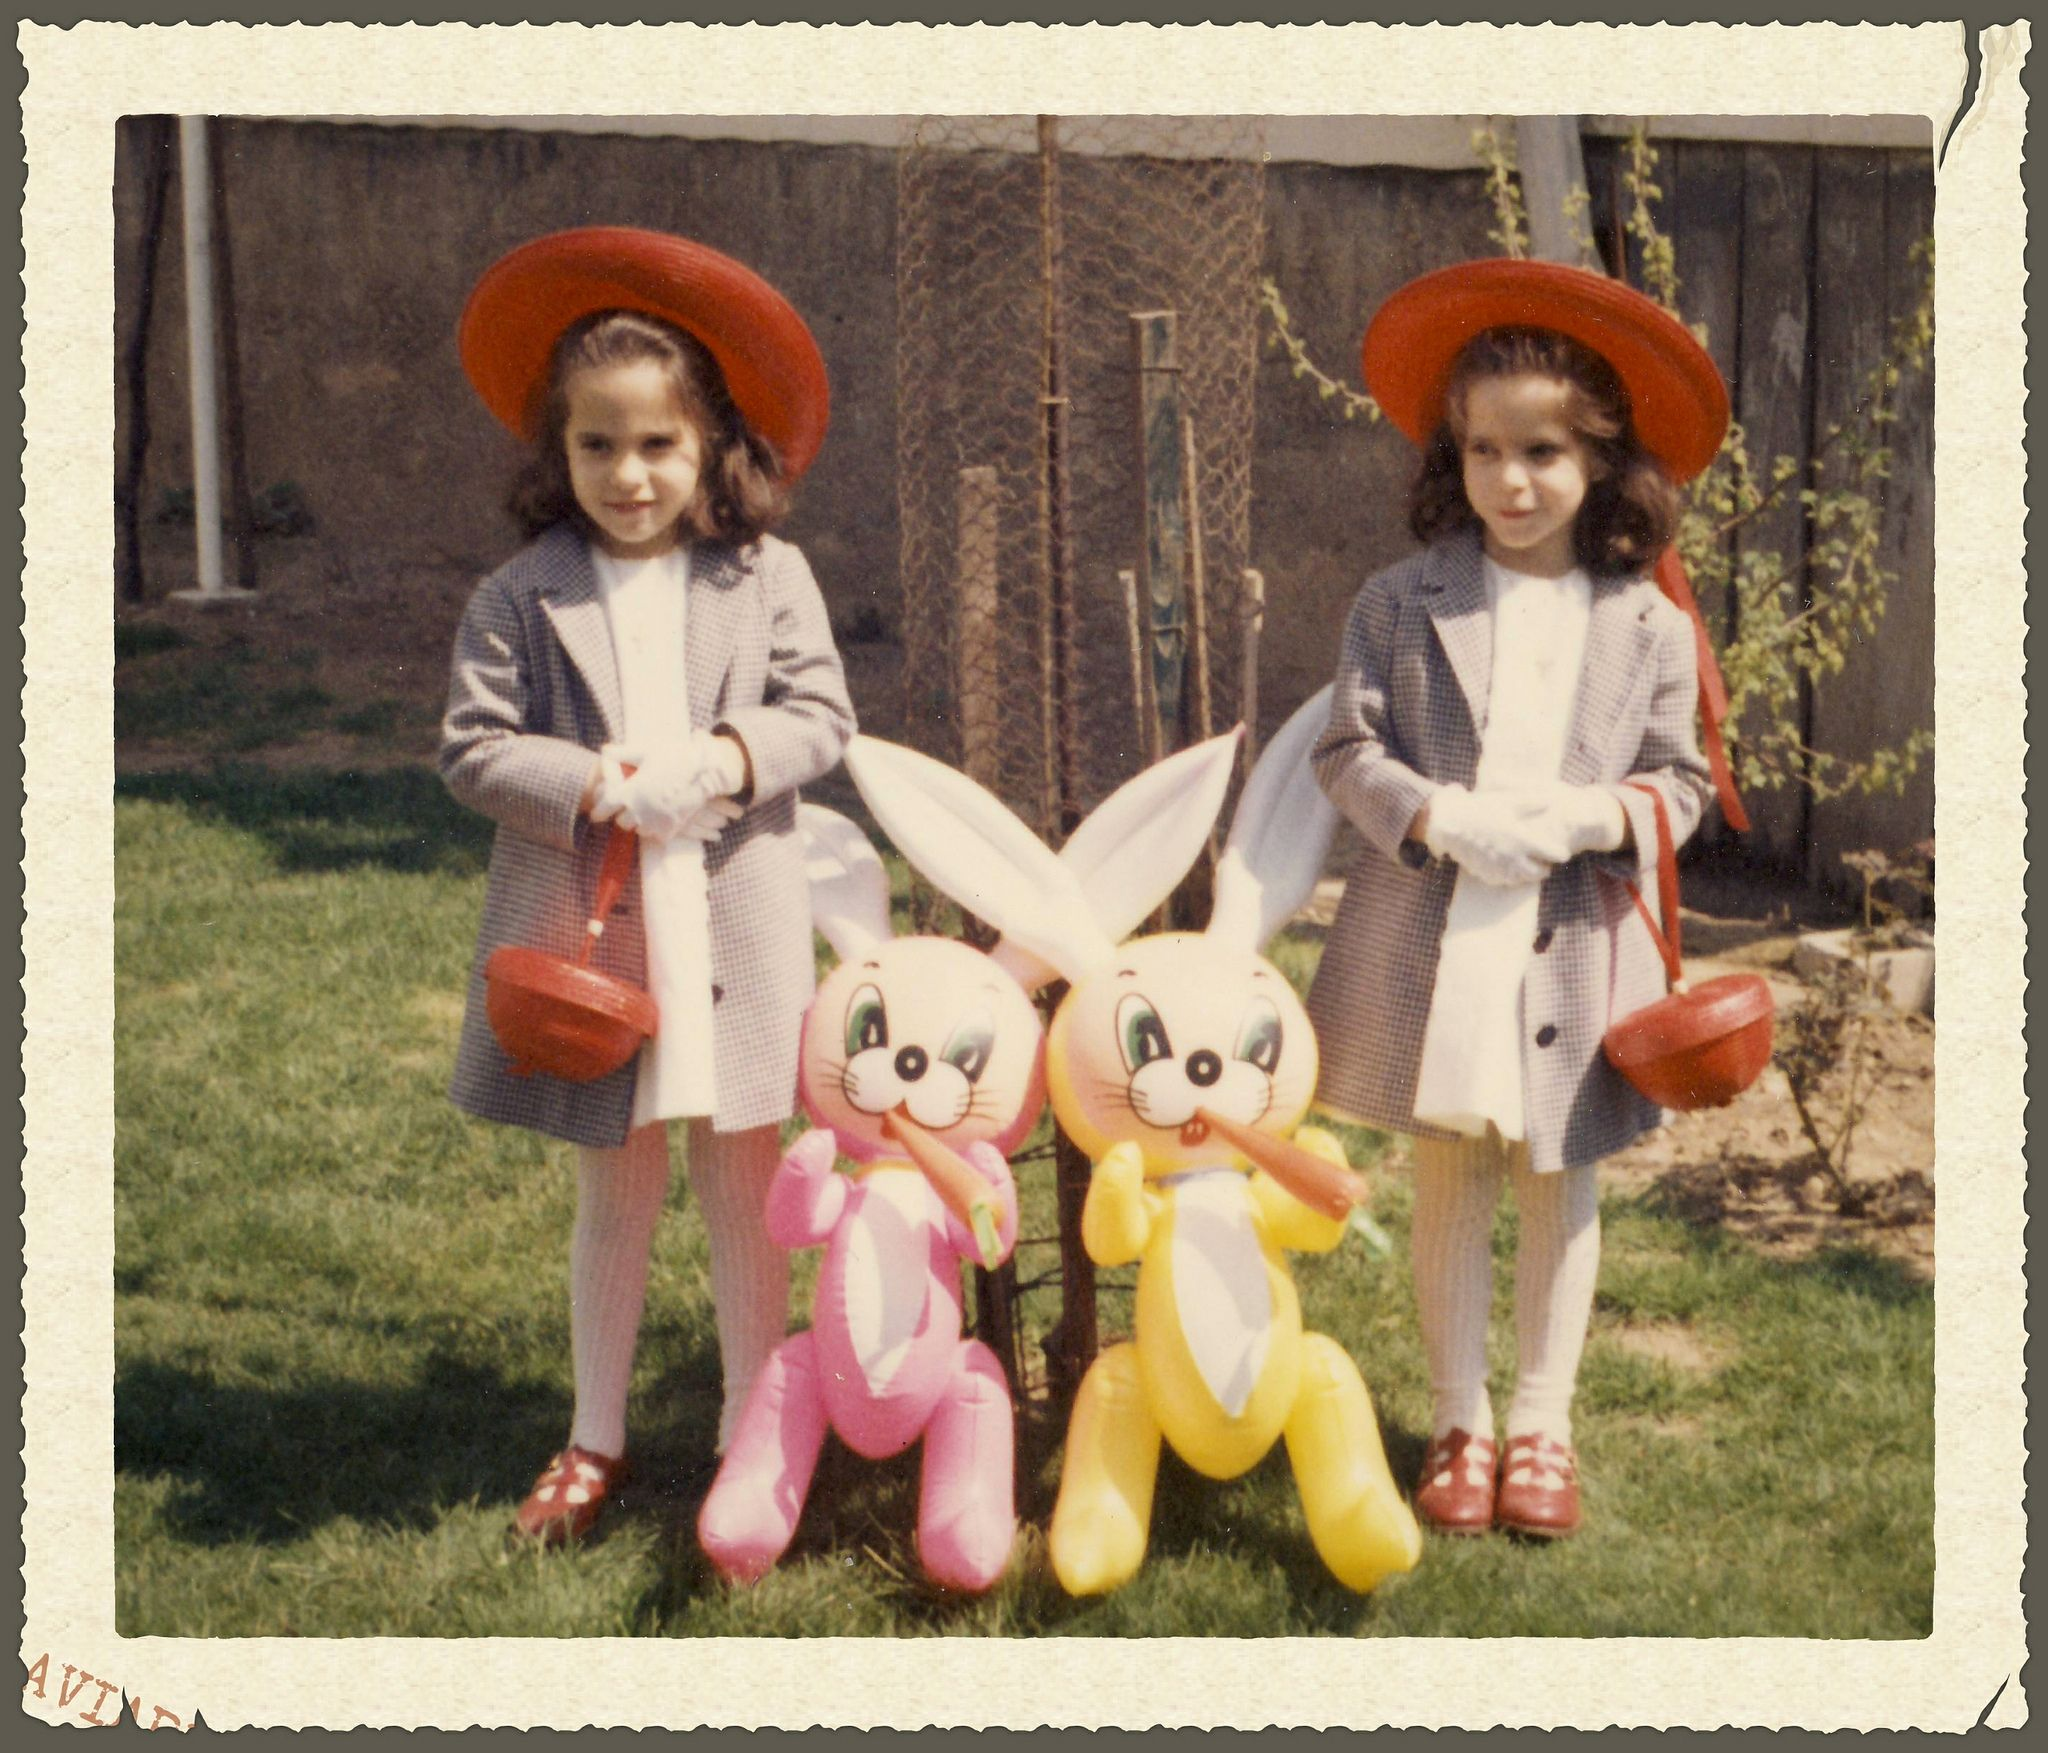 Twins in the Bronx, Vilma and Carol, 1960s